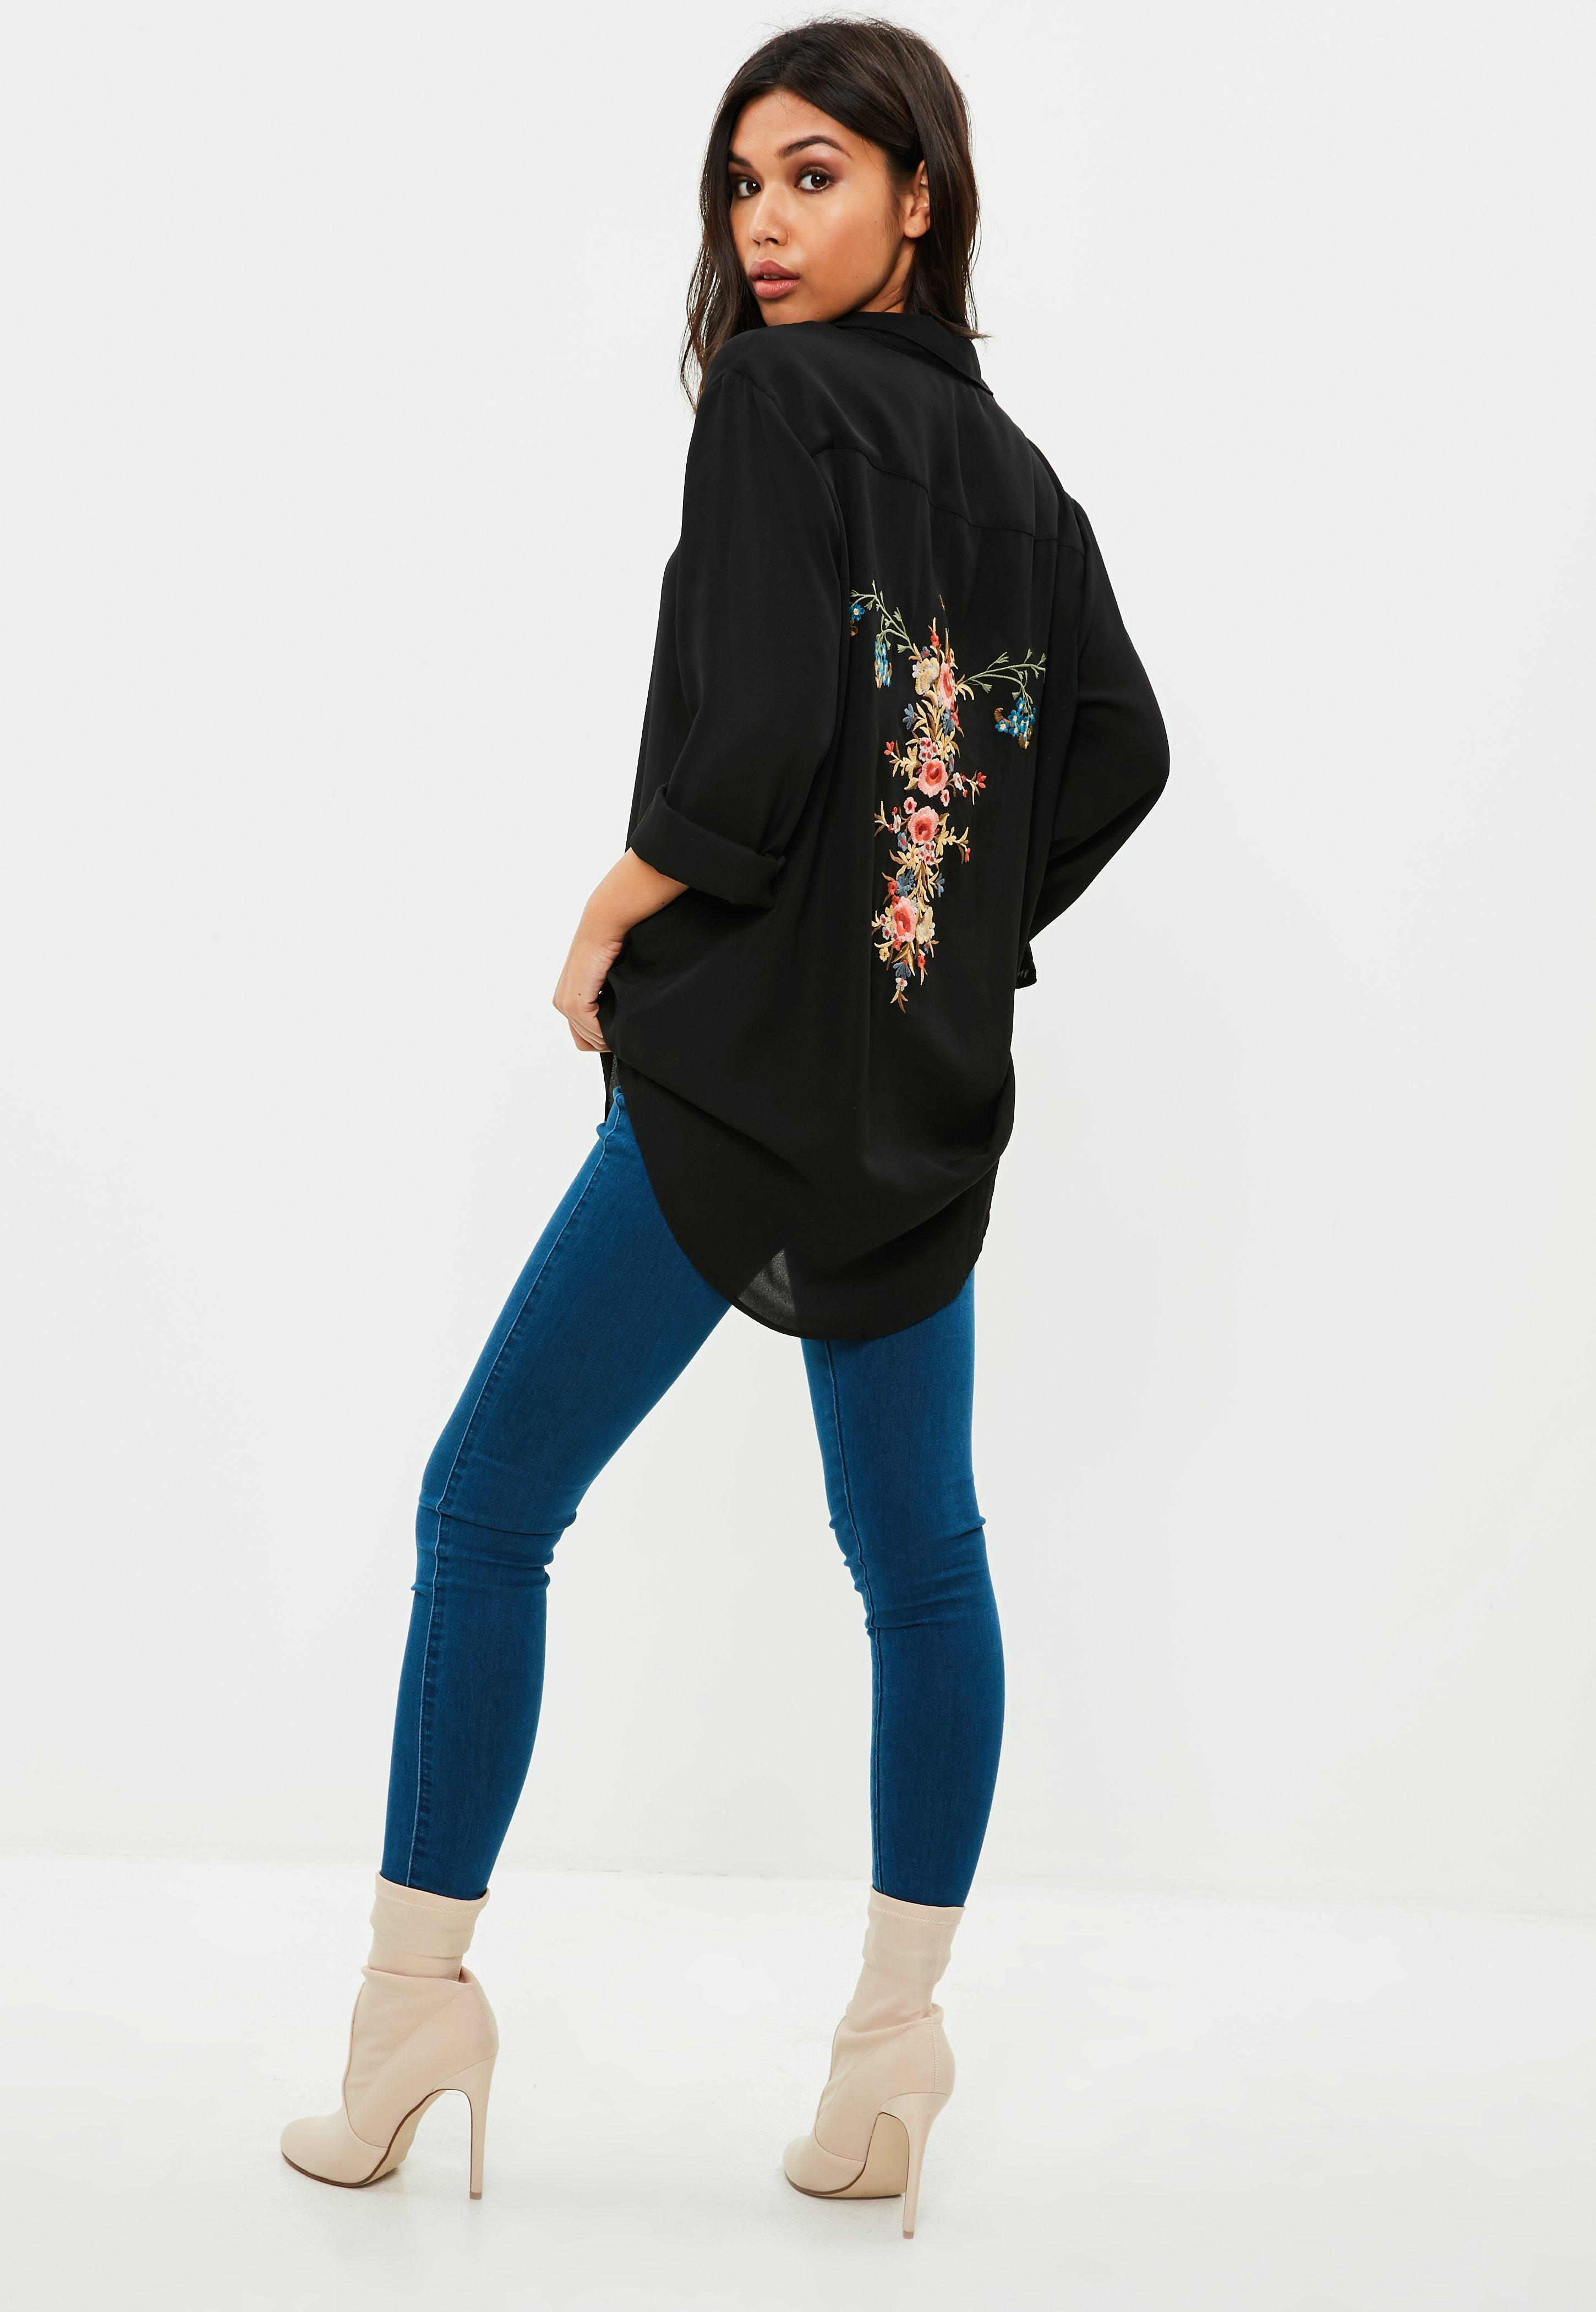 Missguided Chiffon Embroidered Shirt 2018 Unisex Cheap Price 4nGQa